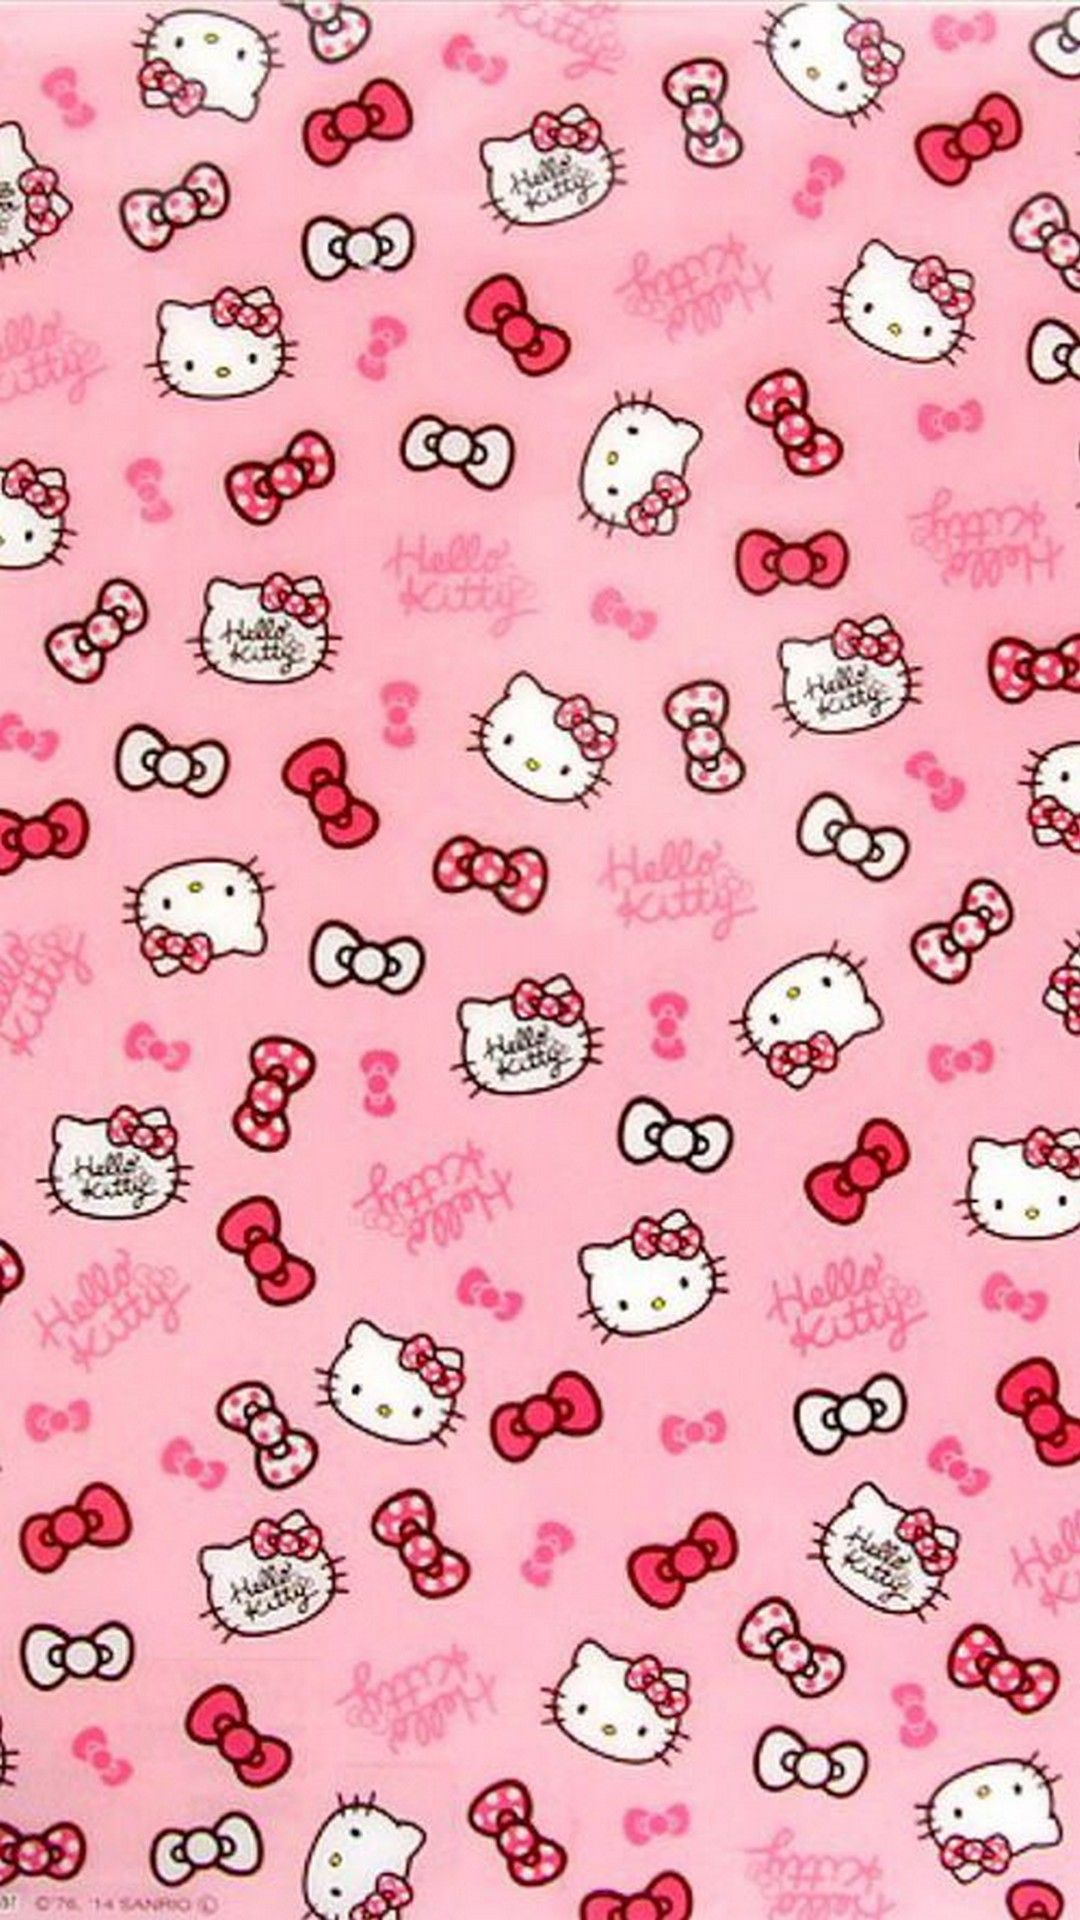 Hello Kitty Pictures Wallpaper Iphone Hd Hello Kitty Backgrounds